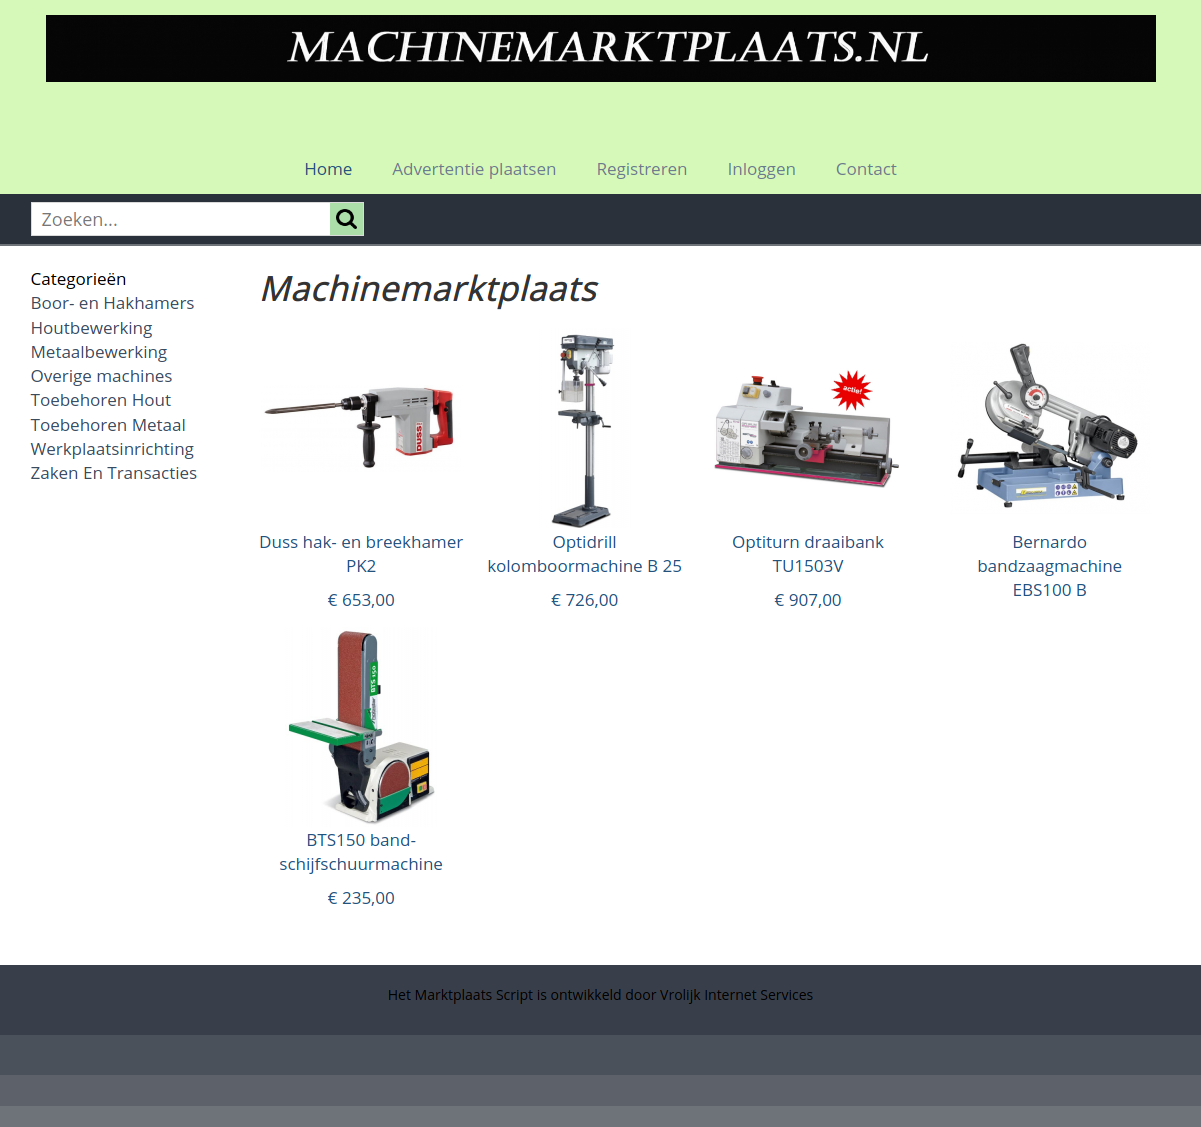 Machinemarktplaats.nl